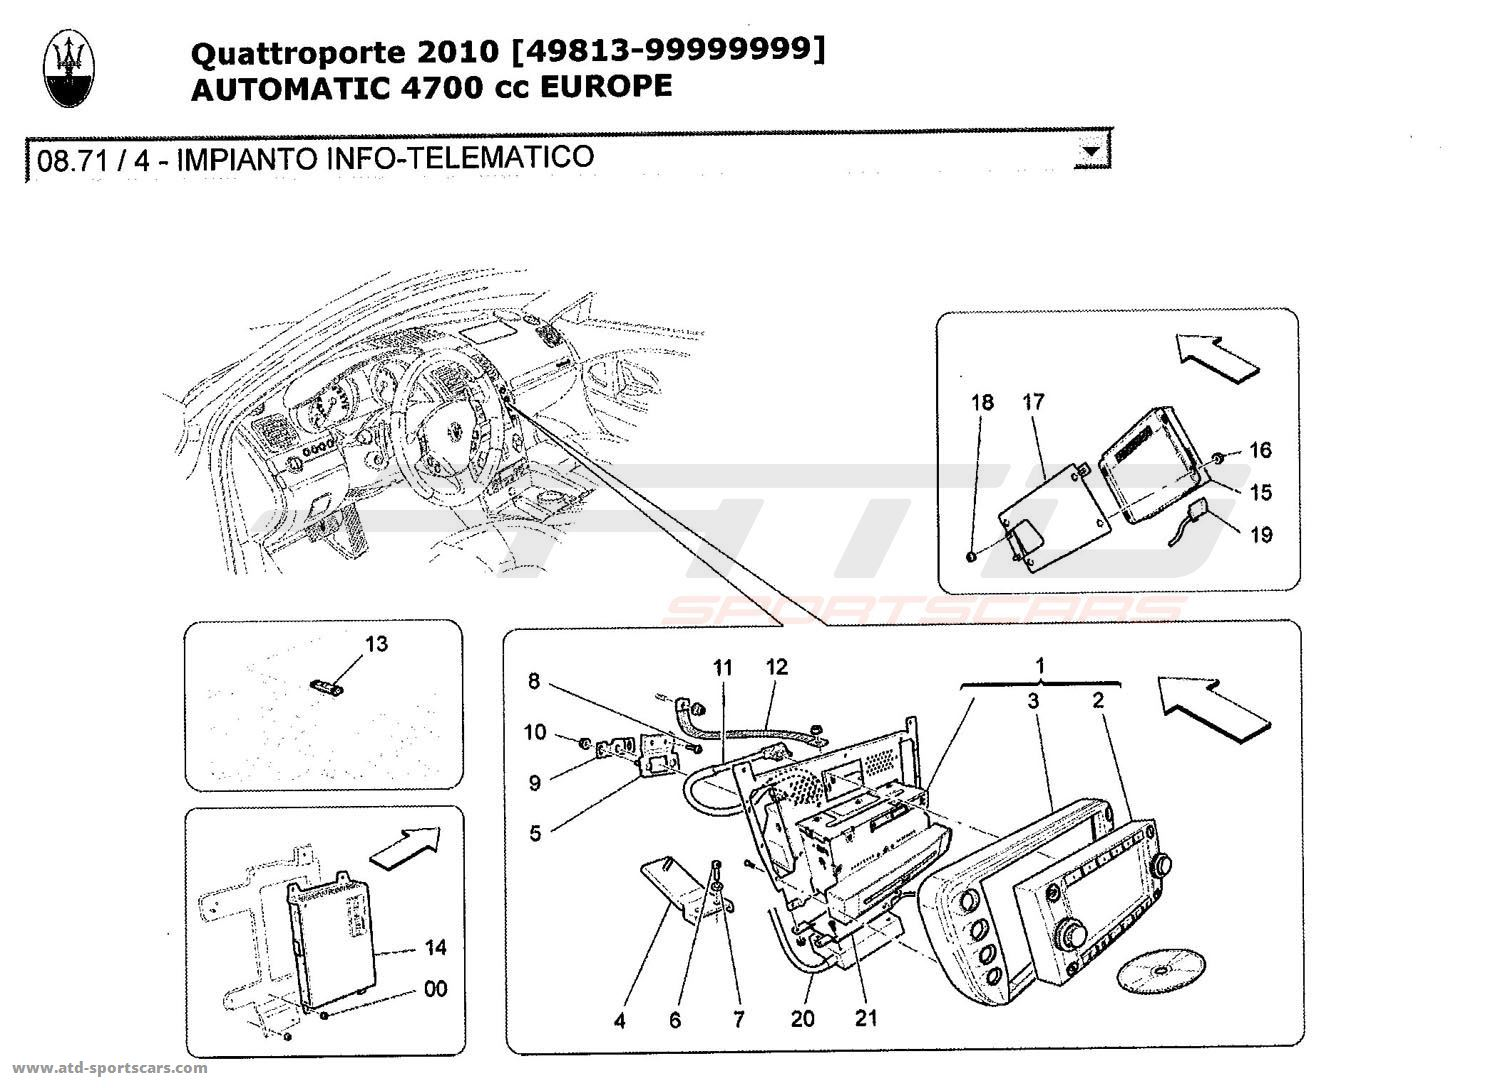 Car Alfa Romeo Gtv moreover Renault Trafic Air Bag Wiring Diagram furthermore Citroen C3 Airbag Wiring Diagram besides Car Alfa Romeo Gtv furthermore Airbag Suspension Wiring Diagram. on renault clio airbag wiring diagram